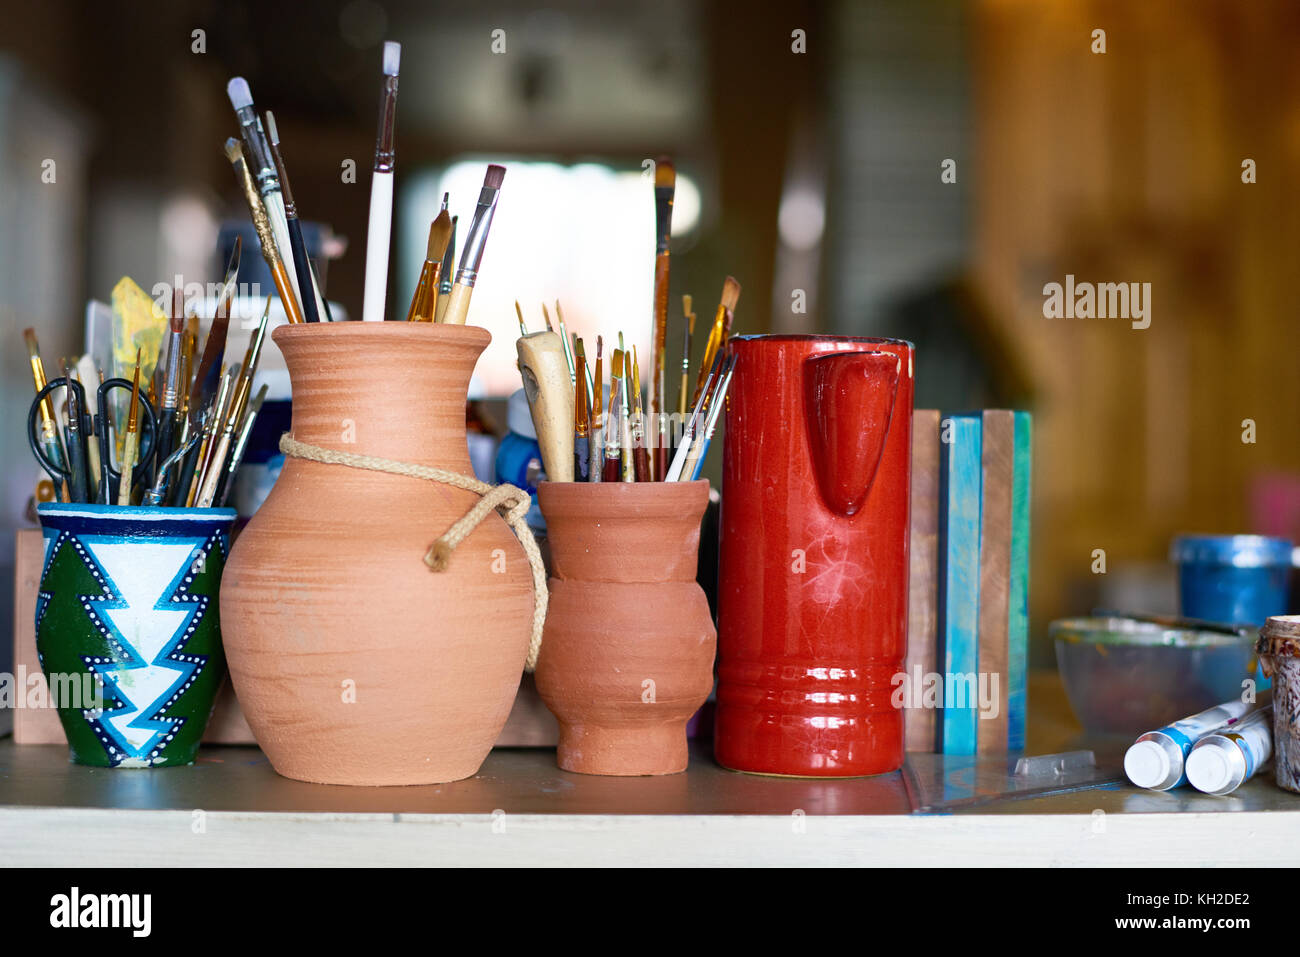 Row of clay pots stock photos row of clay pots stock for Pot painting materials required